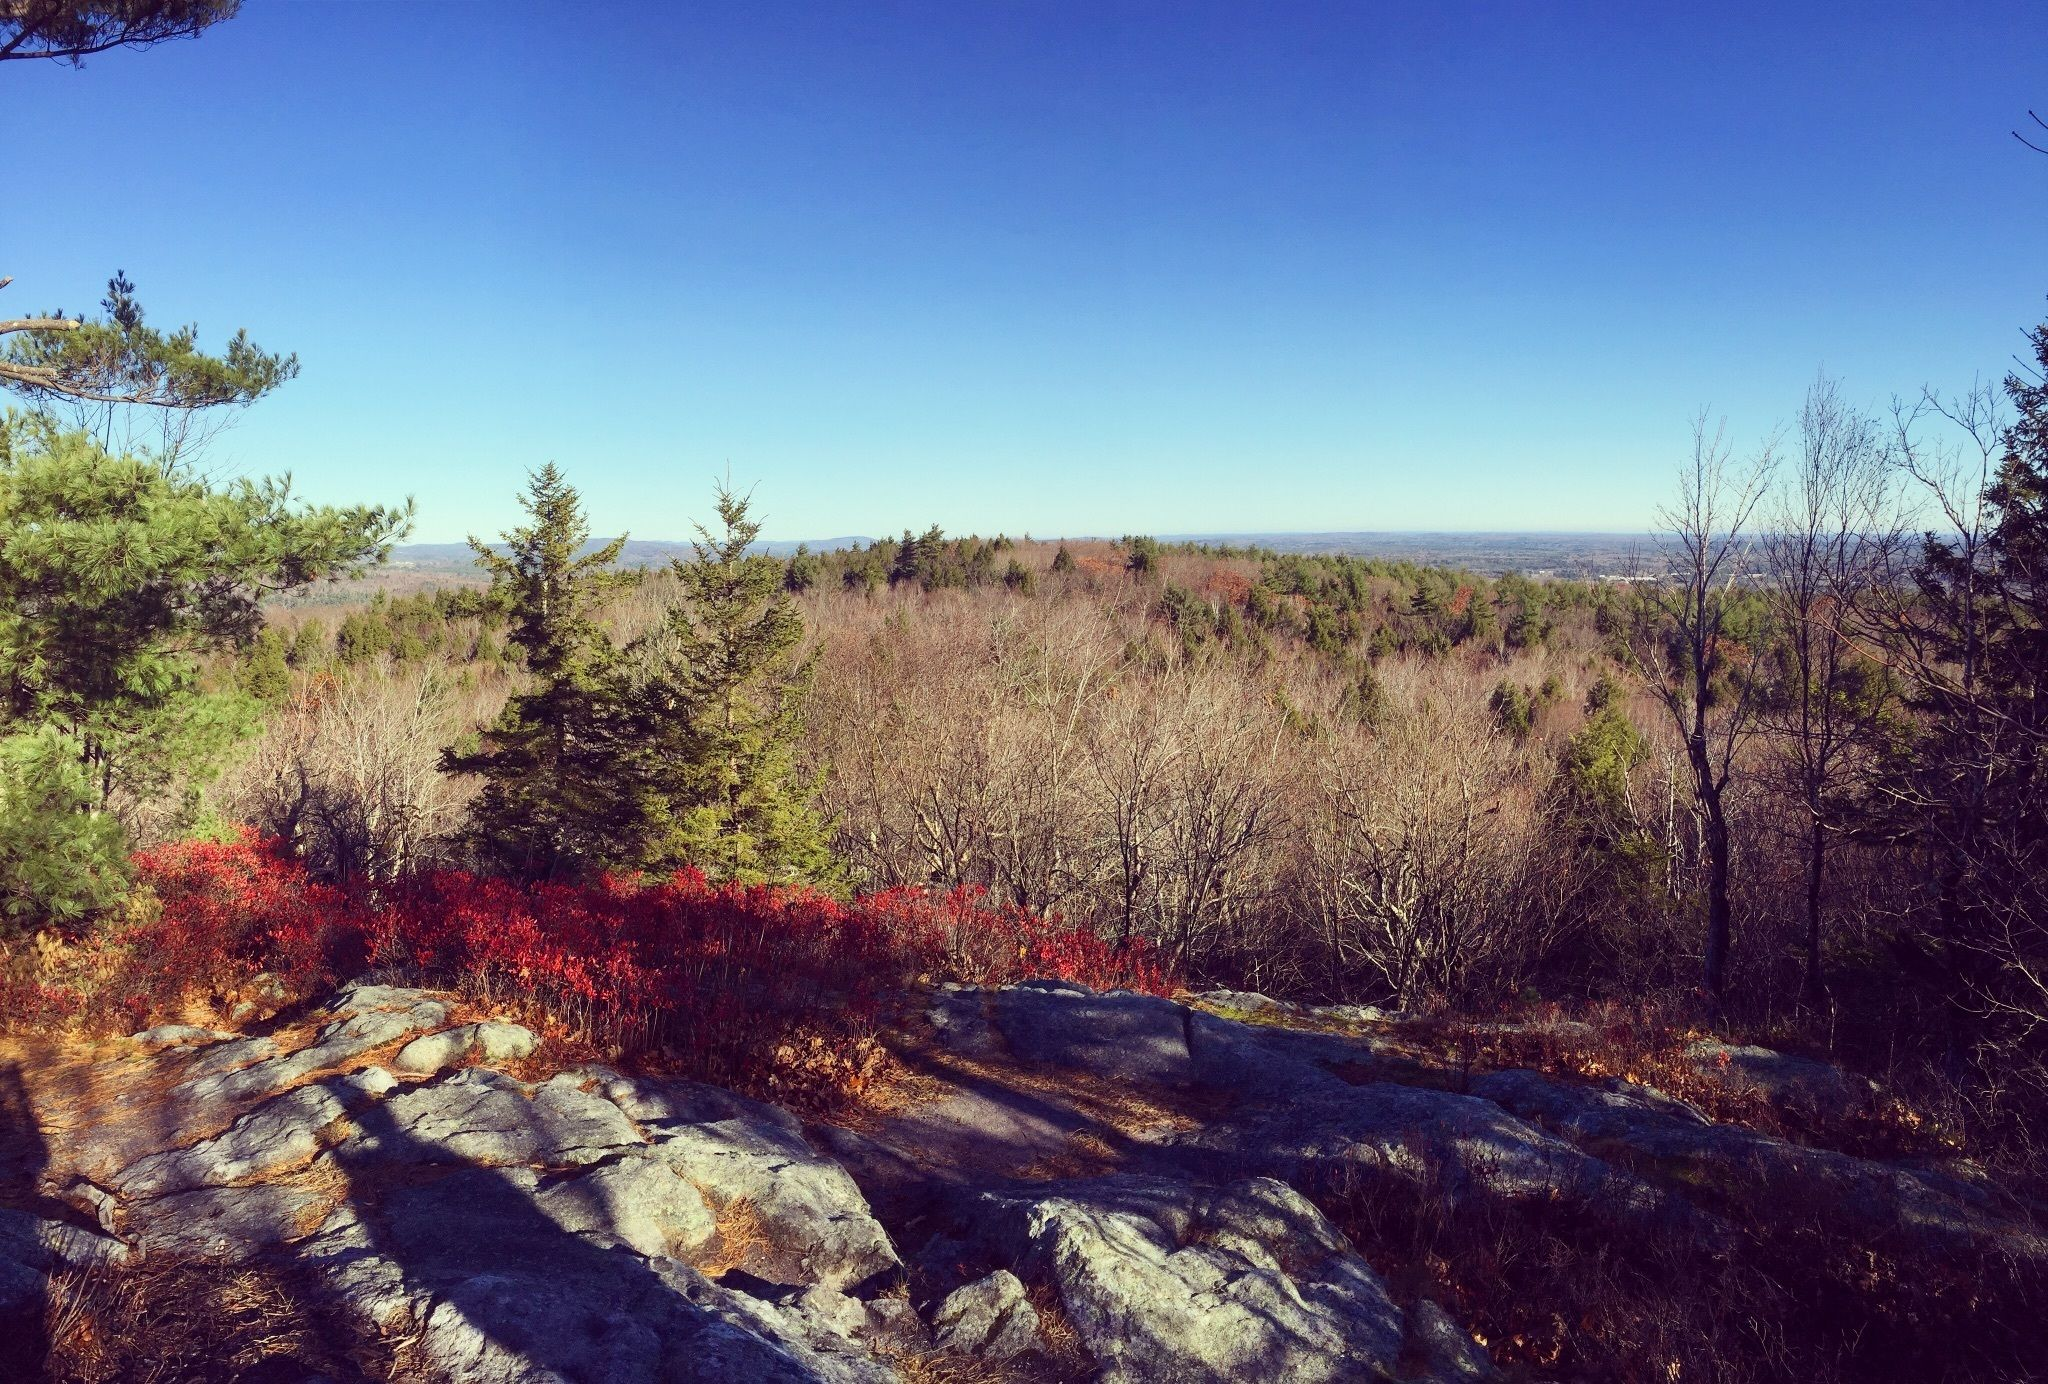 Campers For Sale Near Me >> Best Trails near North Berwick, Maine | AllTrails